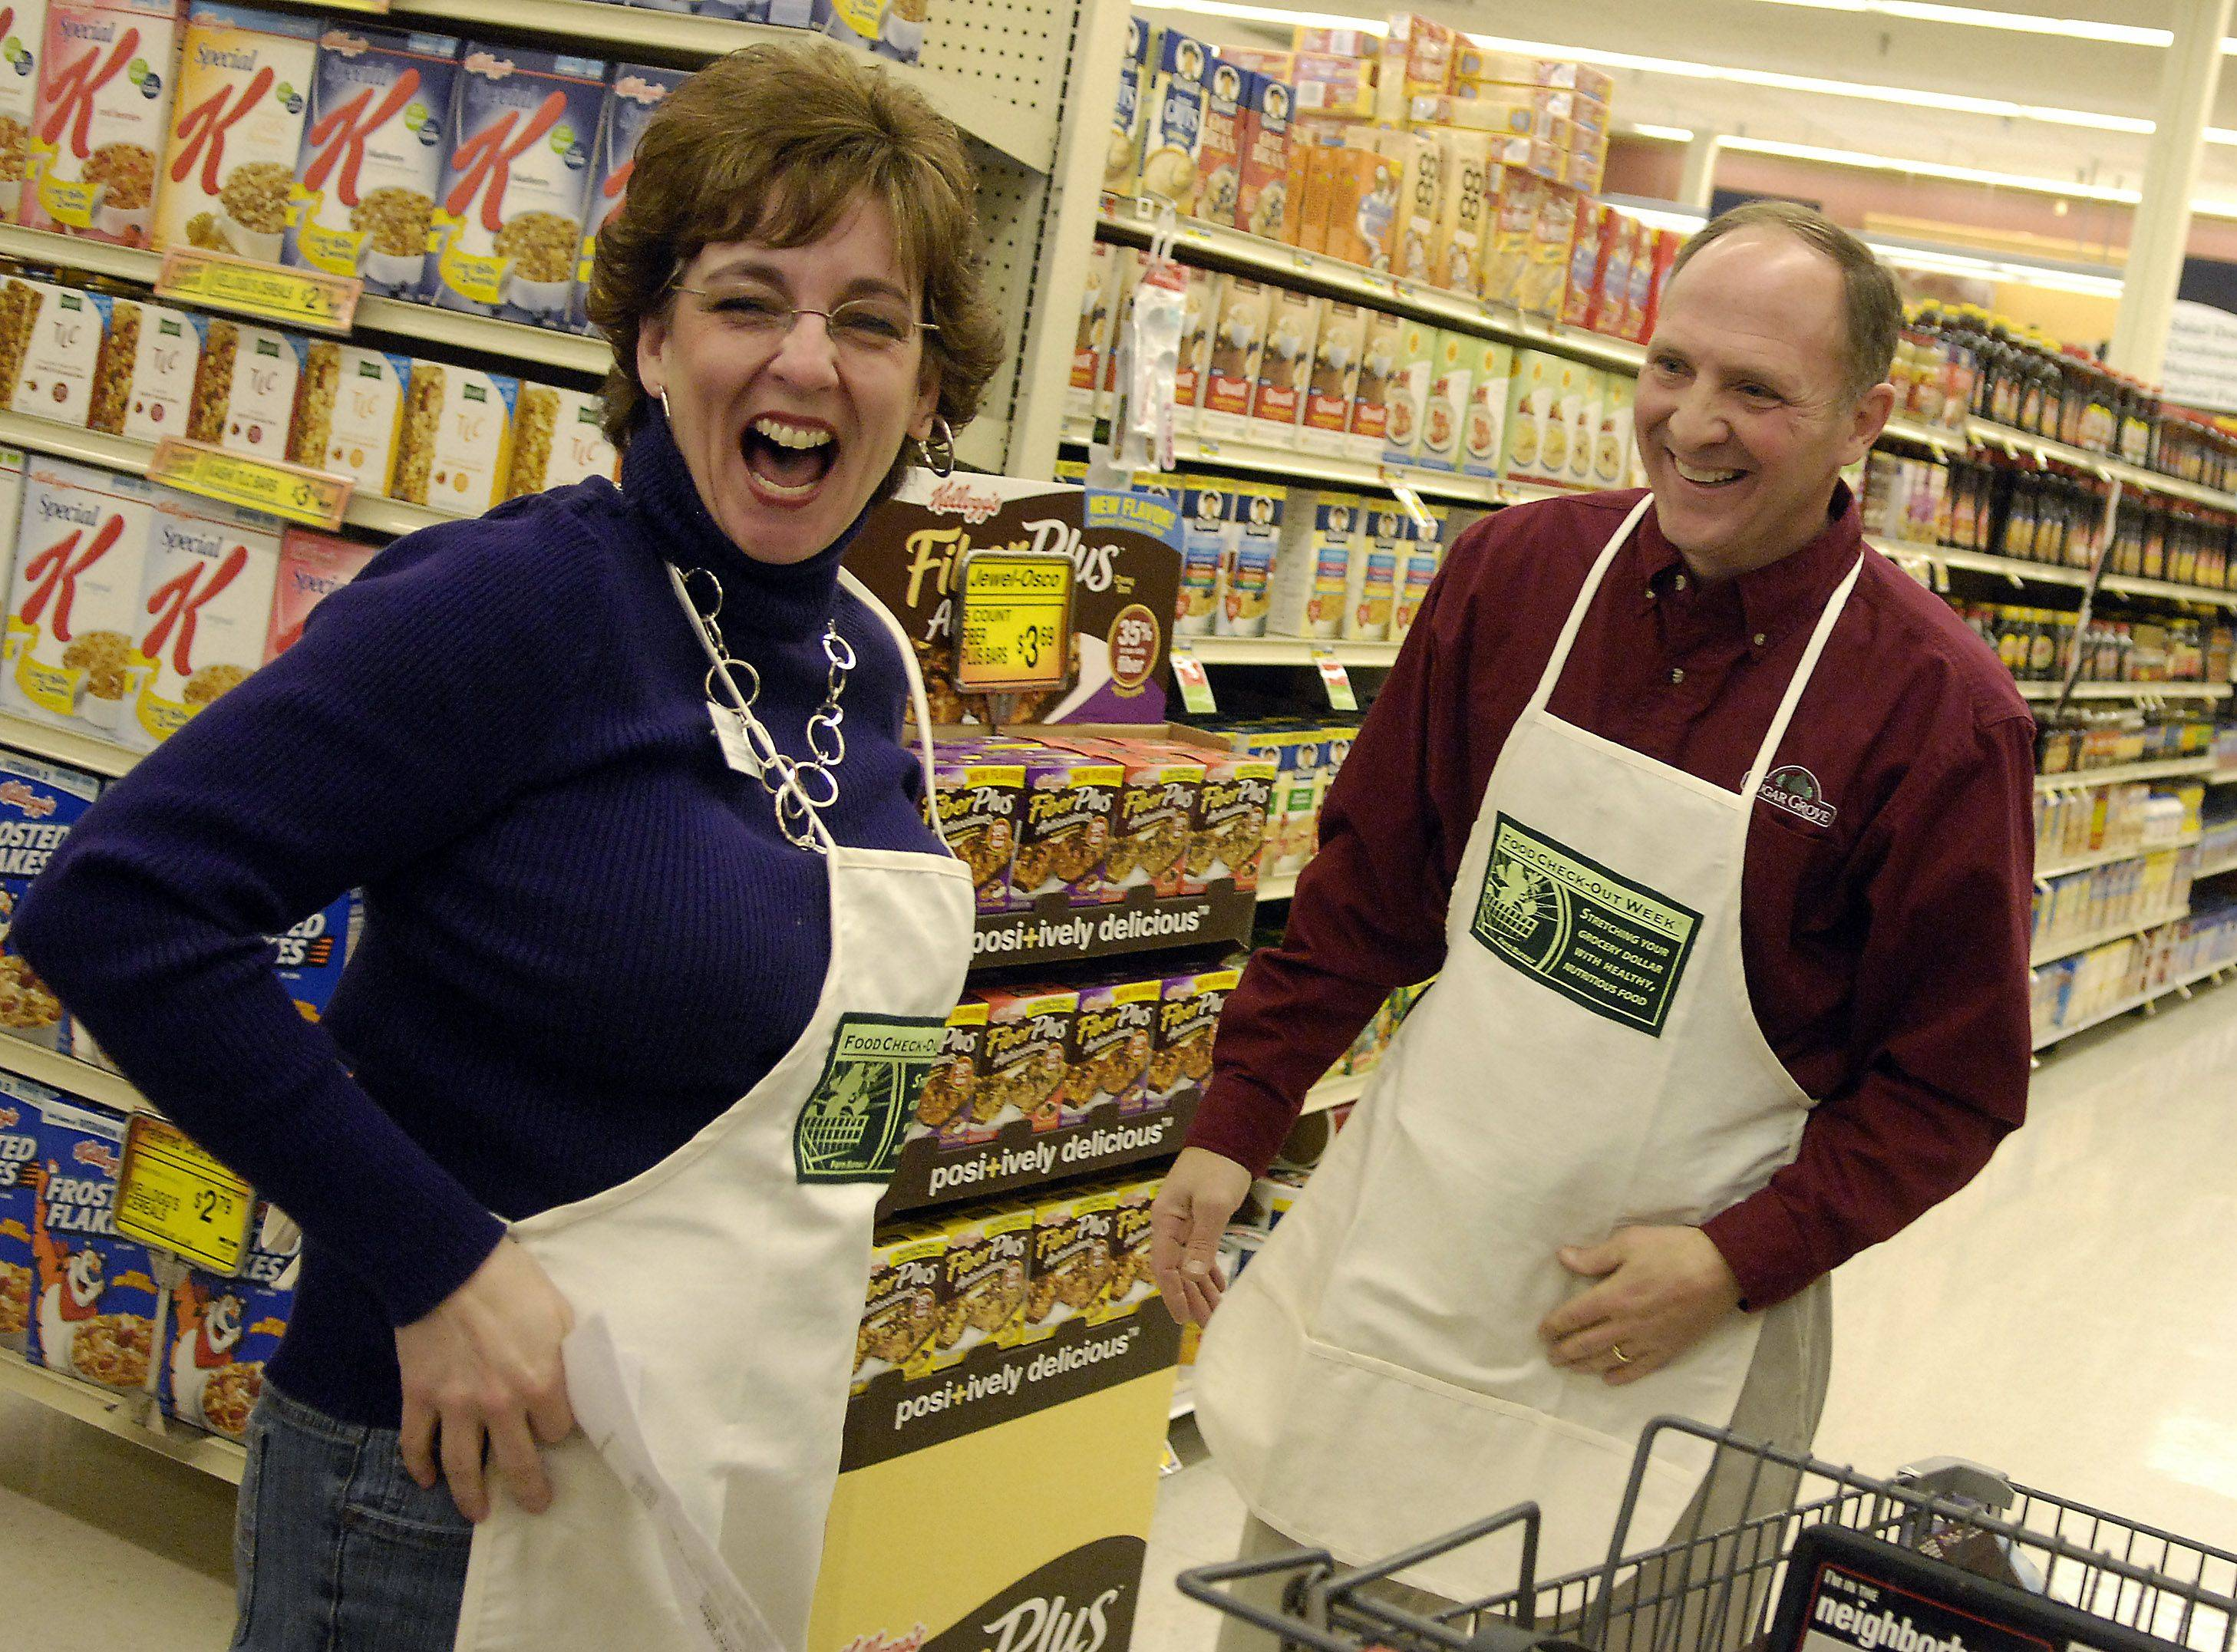 Mayor Sean Michels of Sugar Grove and his partner Melisa Taylor share a laugh after their 5 minute shopping spree ends during Friday's 10th-annual Farm Bureau Food Check-Out Challenge at Jewel in Batavia Friday.